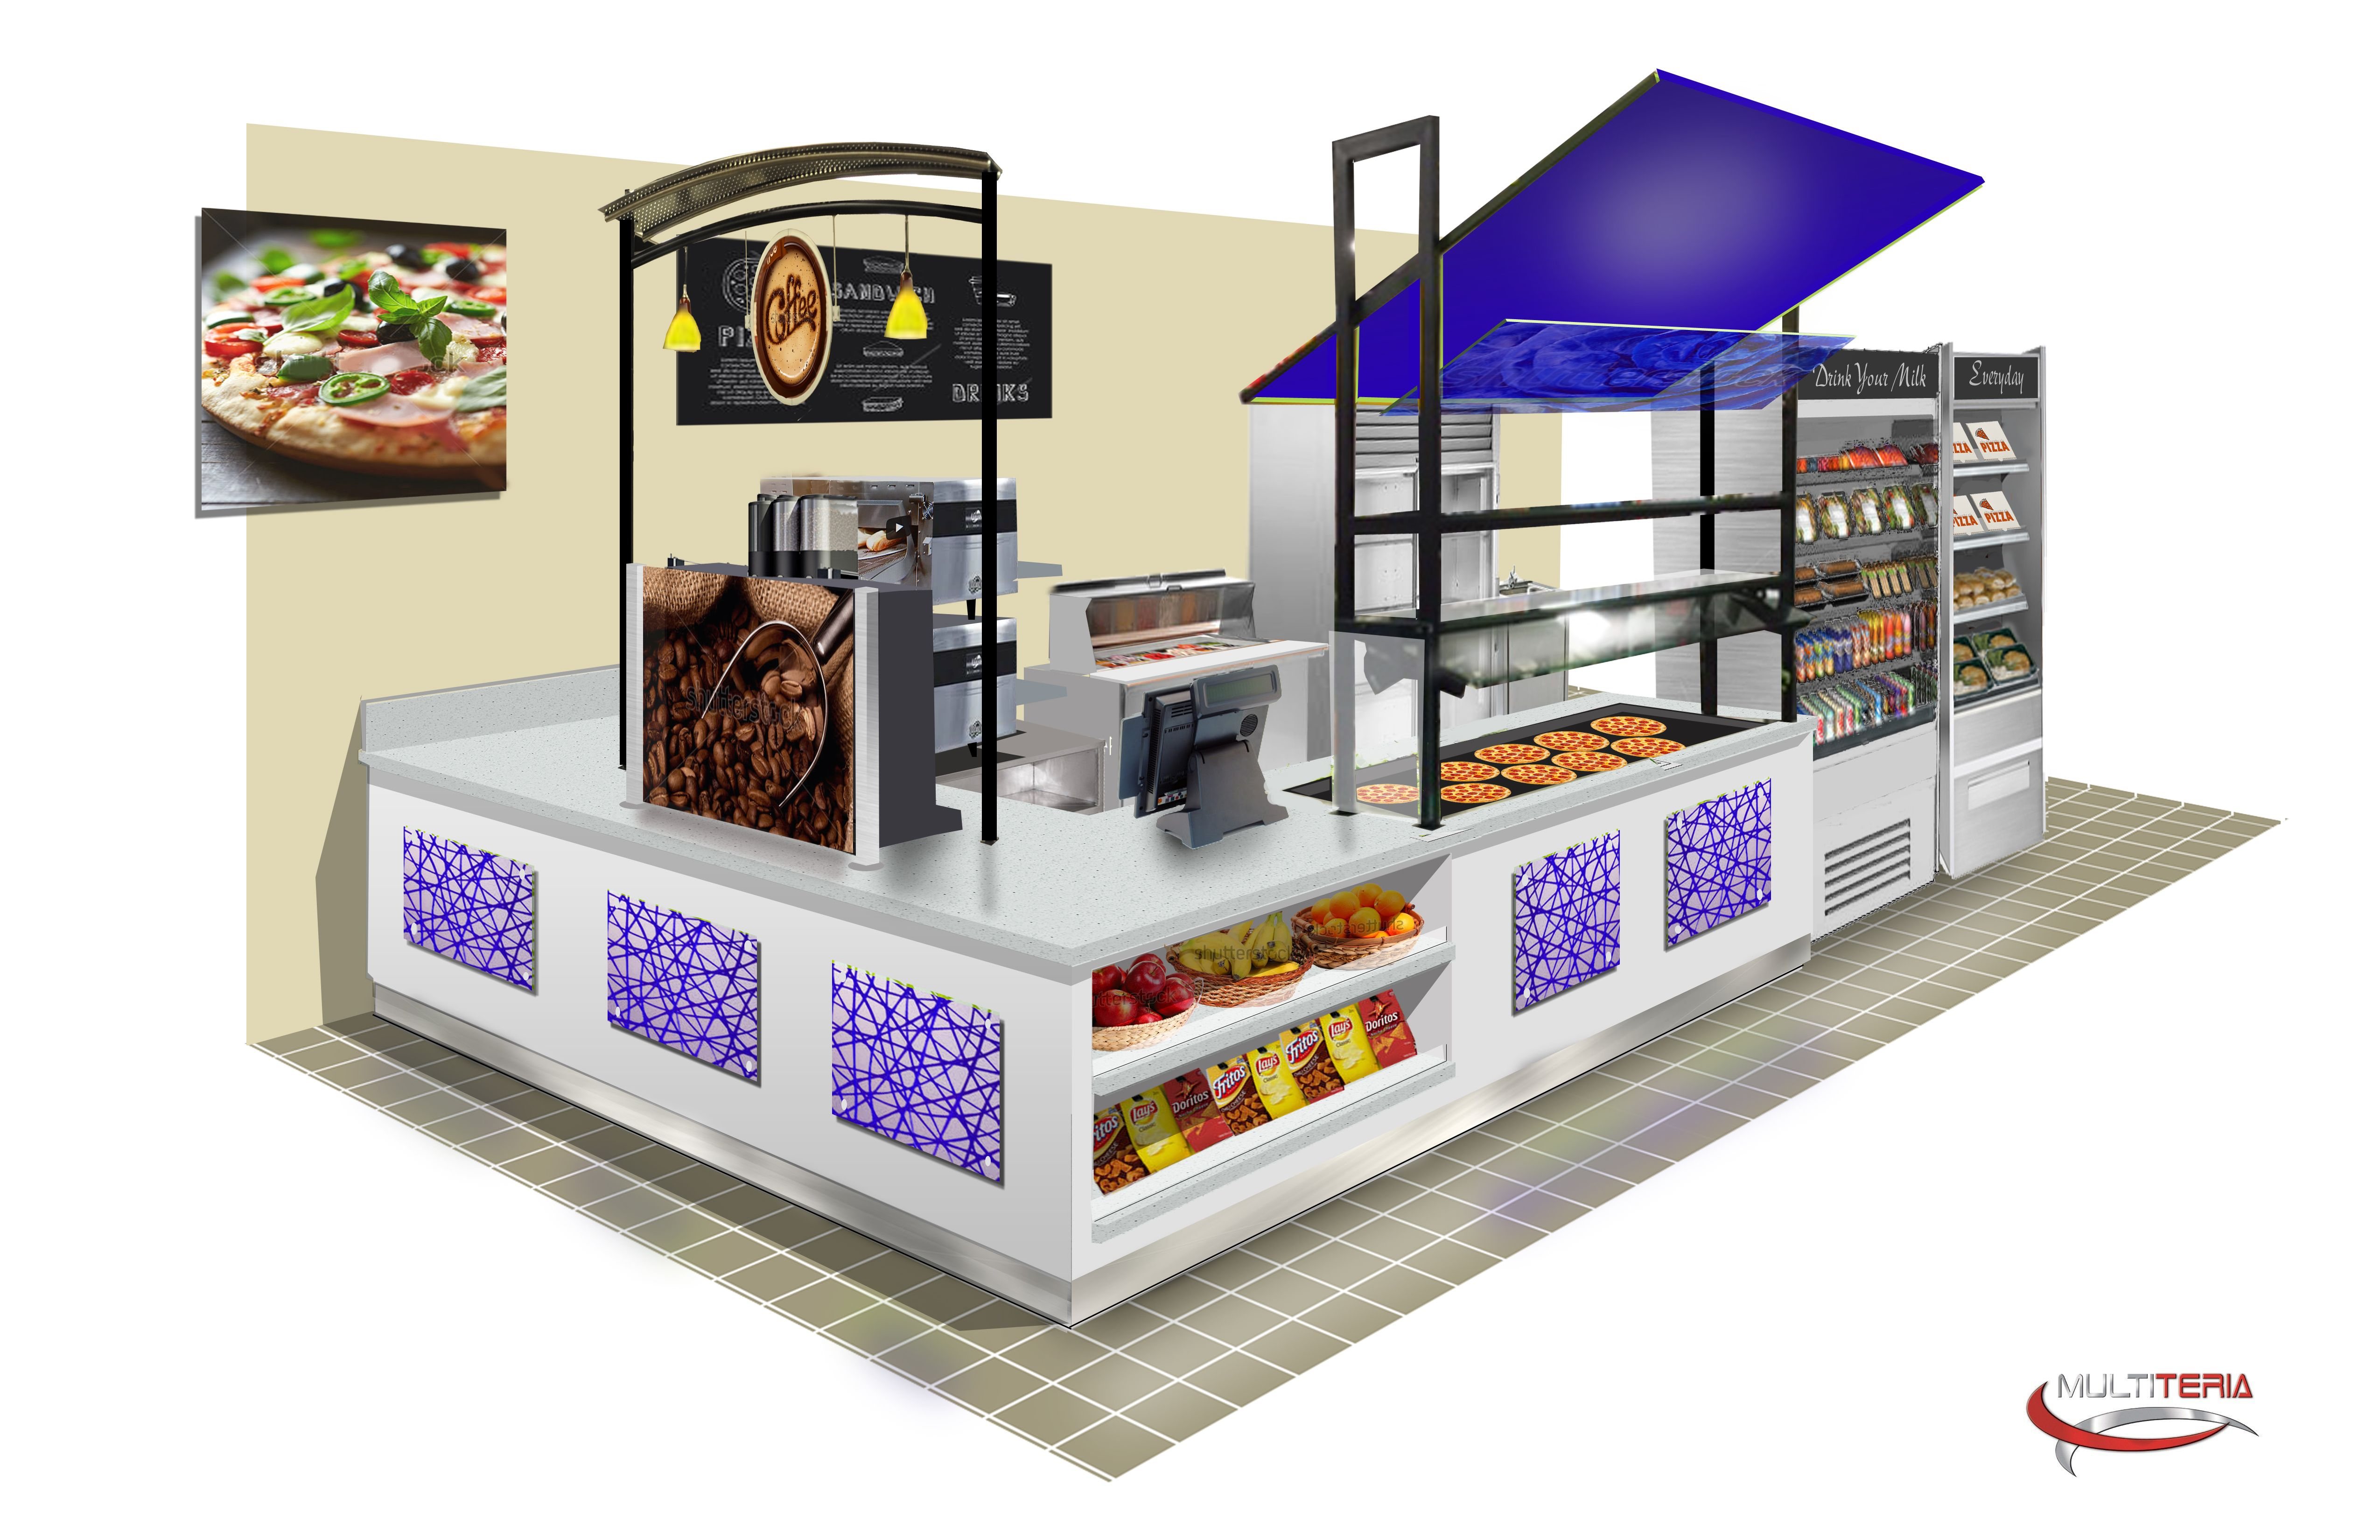 Essence Retail Kiosk Concepts provide modular counters that